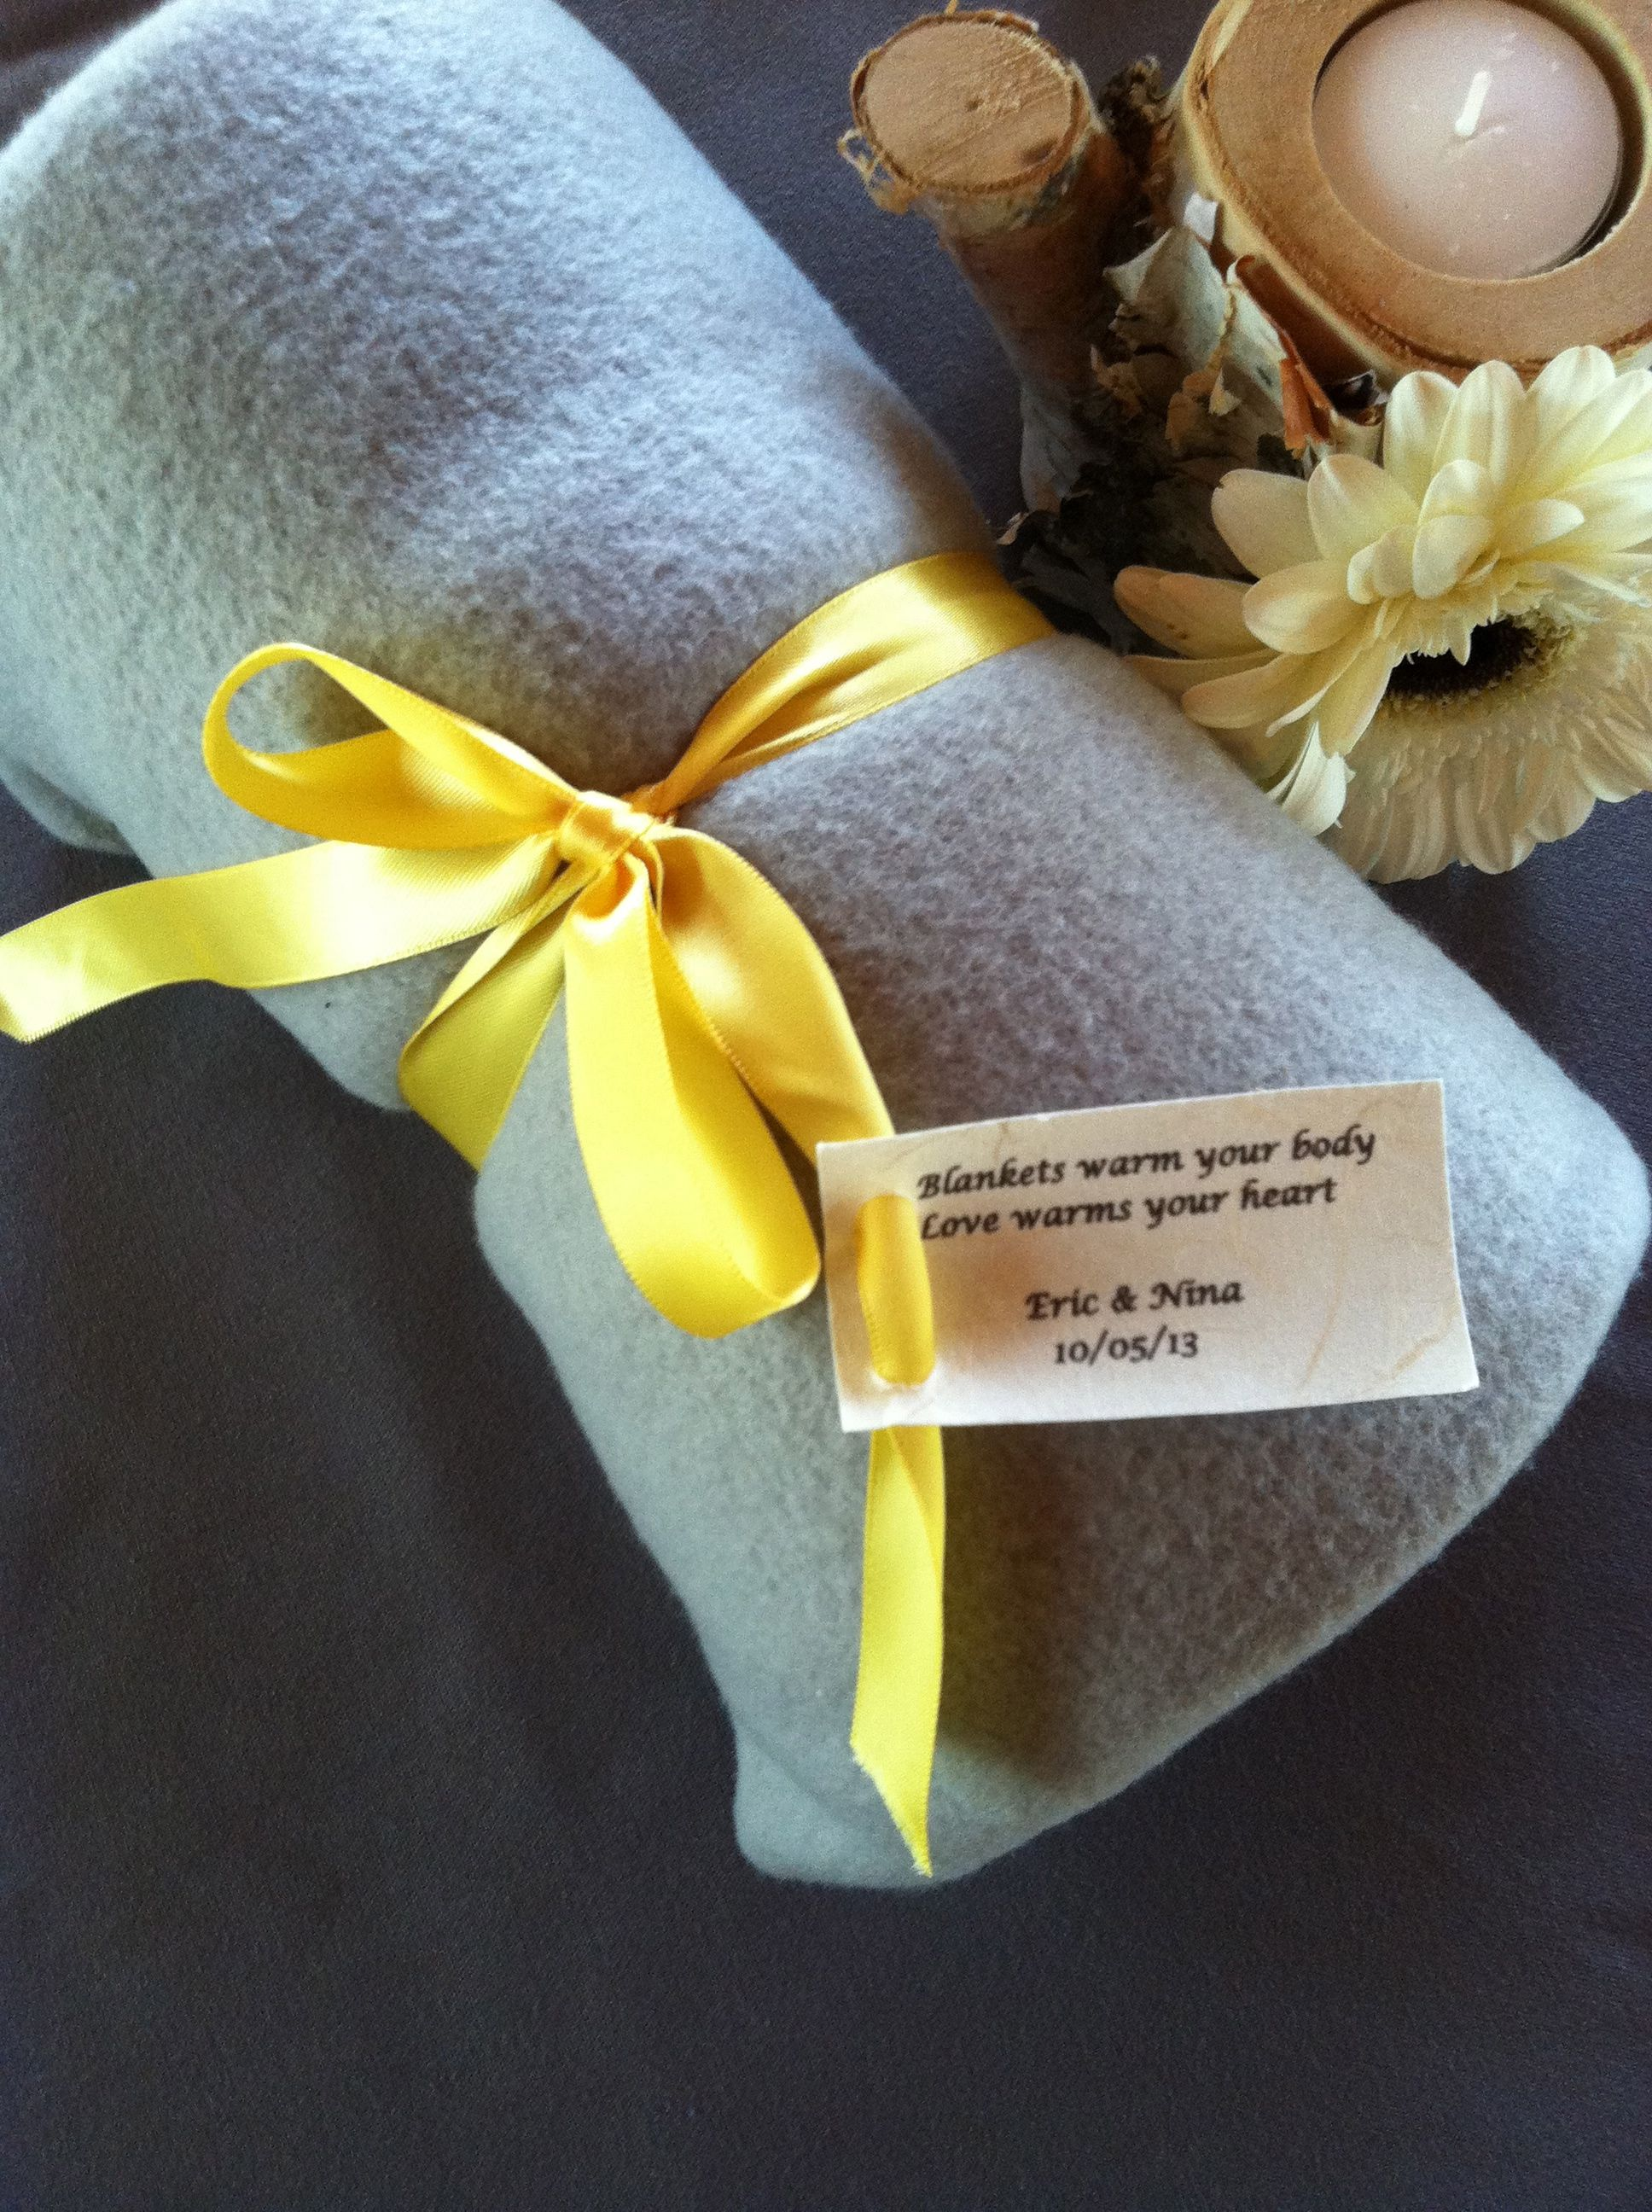 Nina & Eric provided blankets as guest favors at their October wedding at Meadow Ridge Events. What a great idea for fall outdoor weddings!